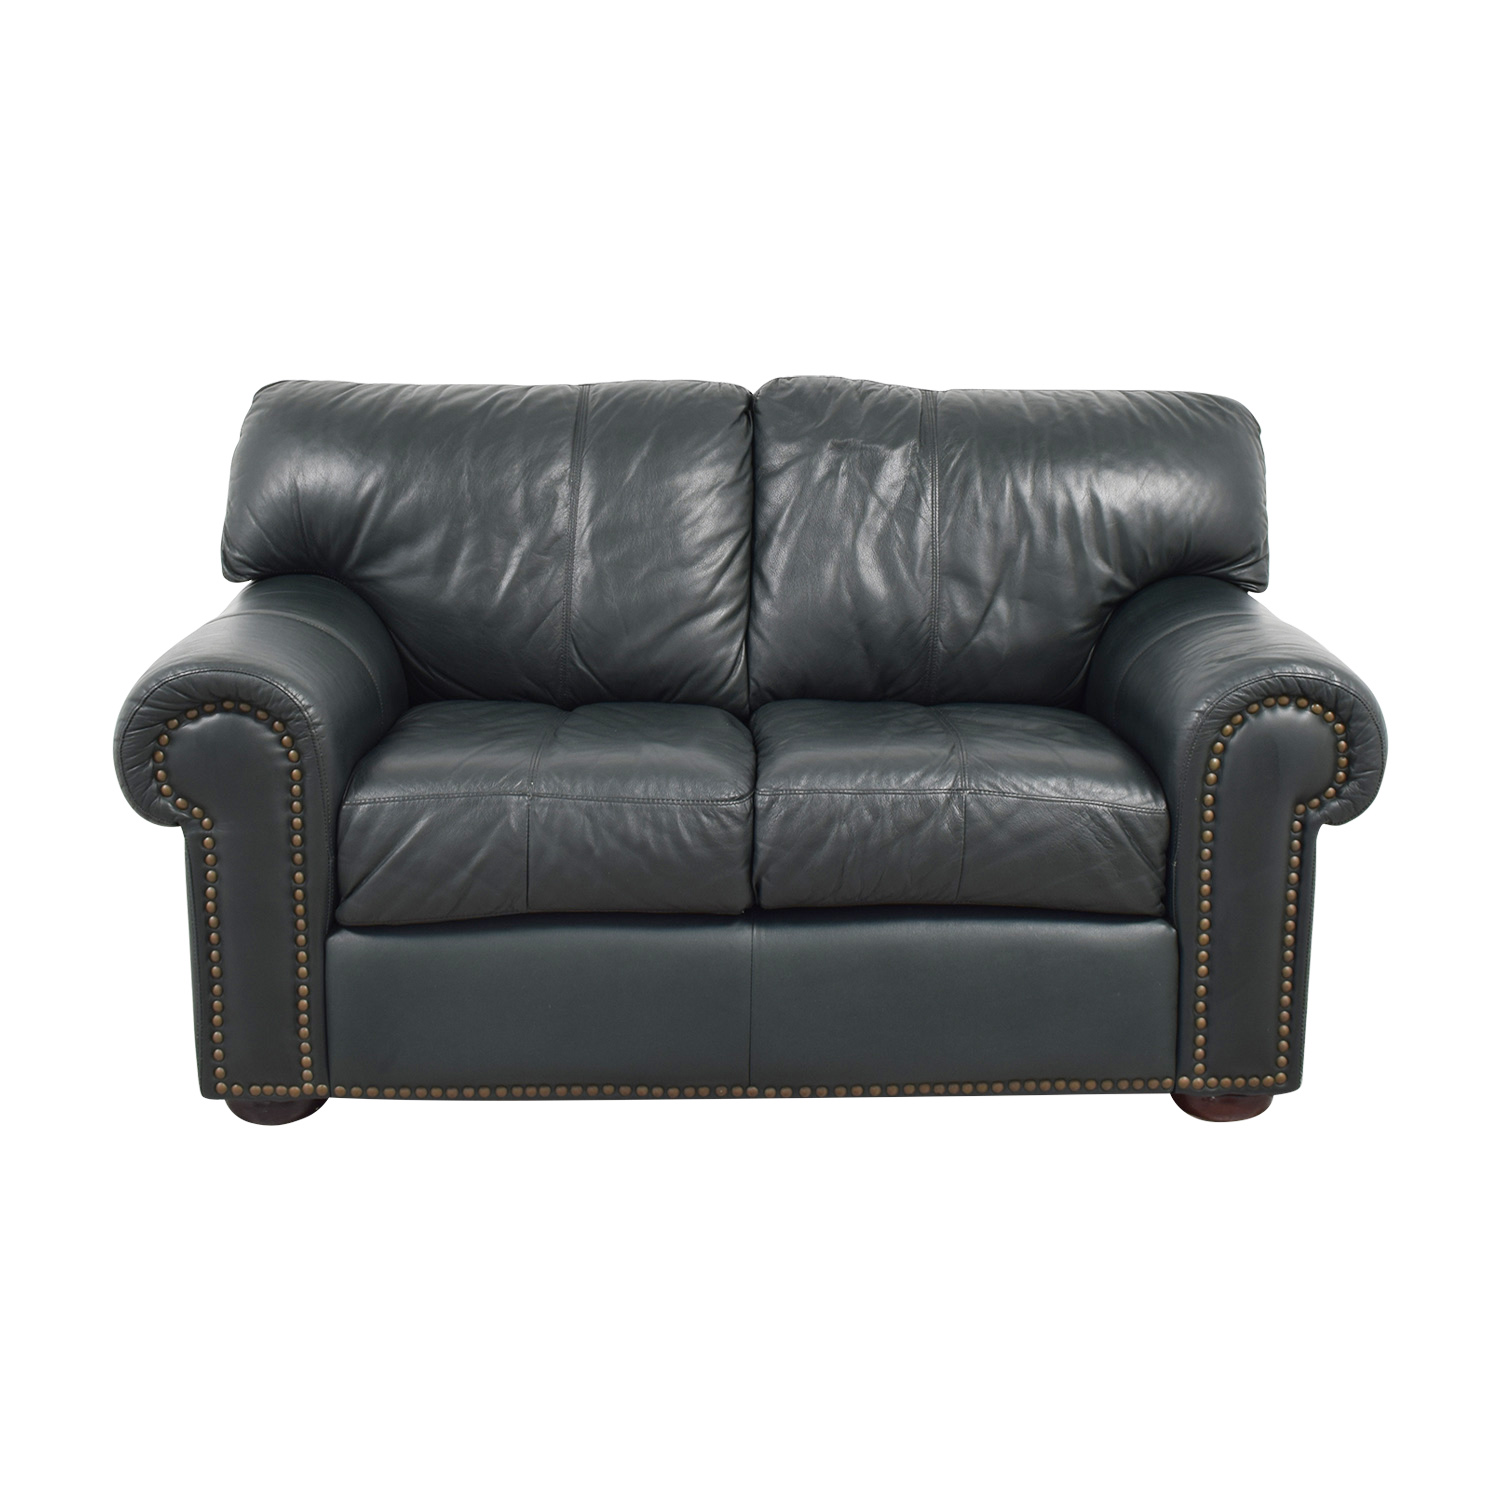 Leather Mart Green Leather Nailhead Loveseat / Sofas